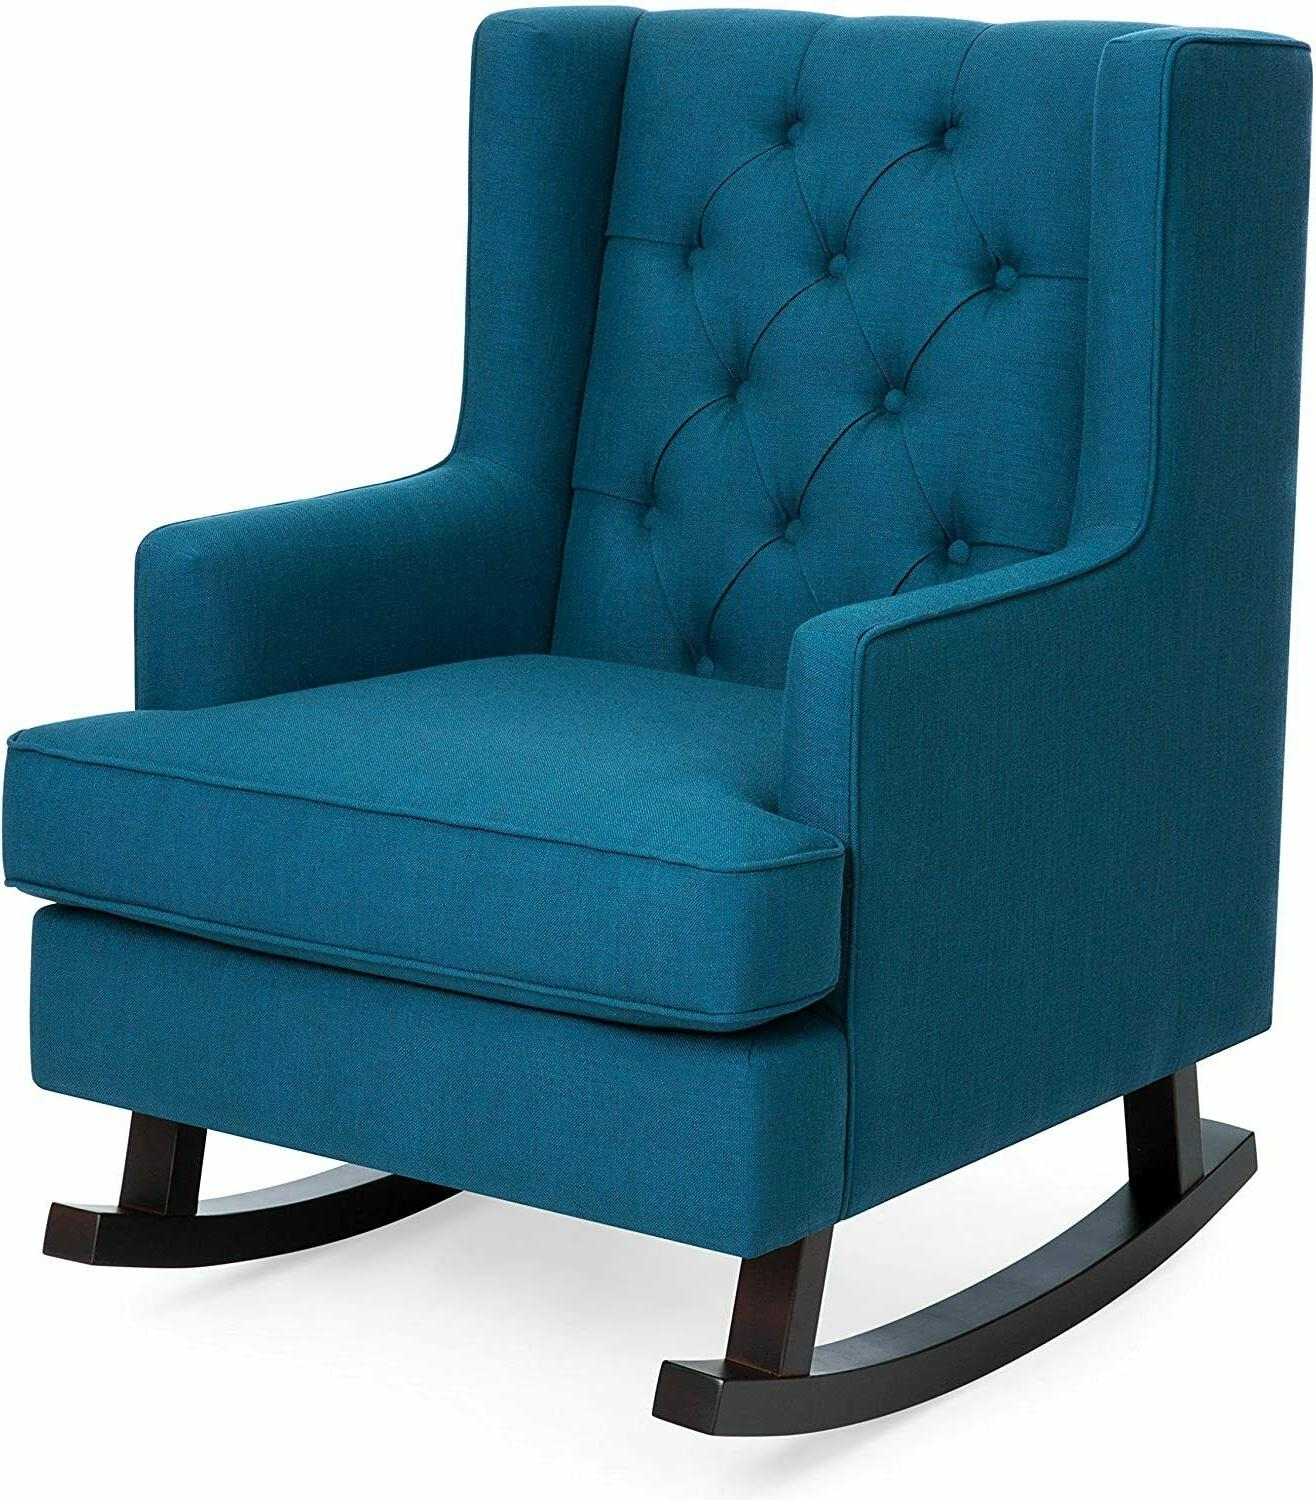 Upholstered Rocking Accent Chair Living Room w/Wood